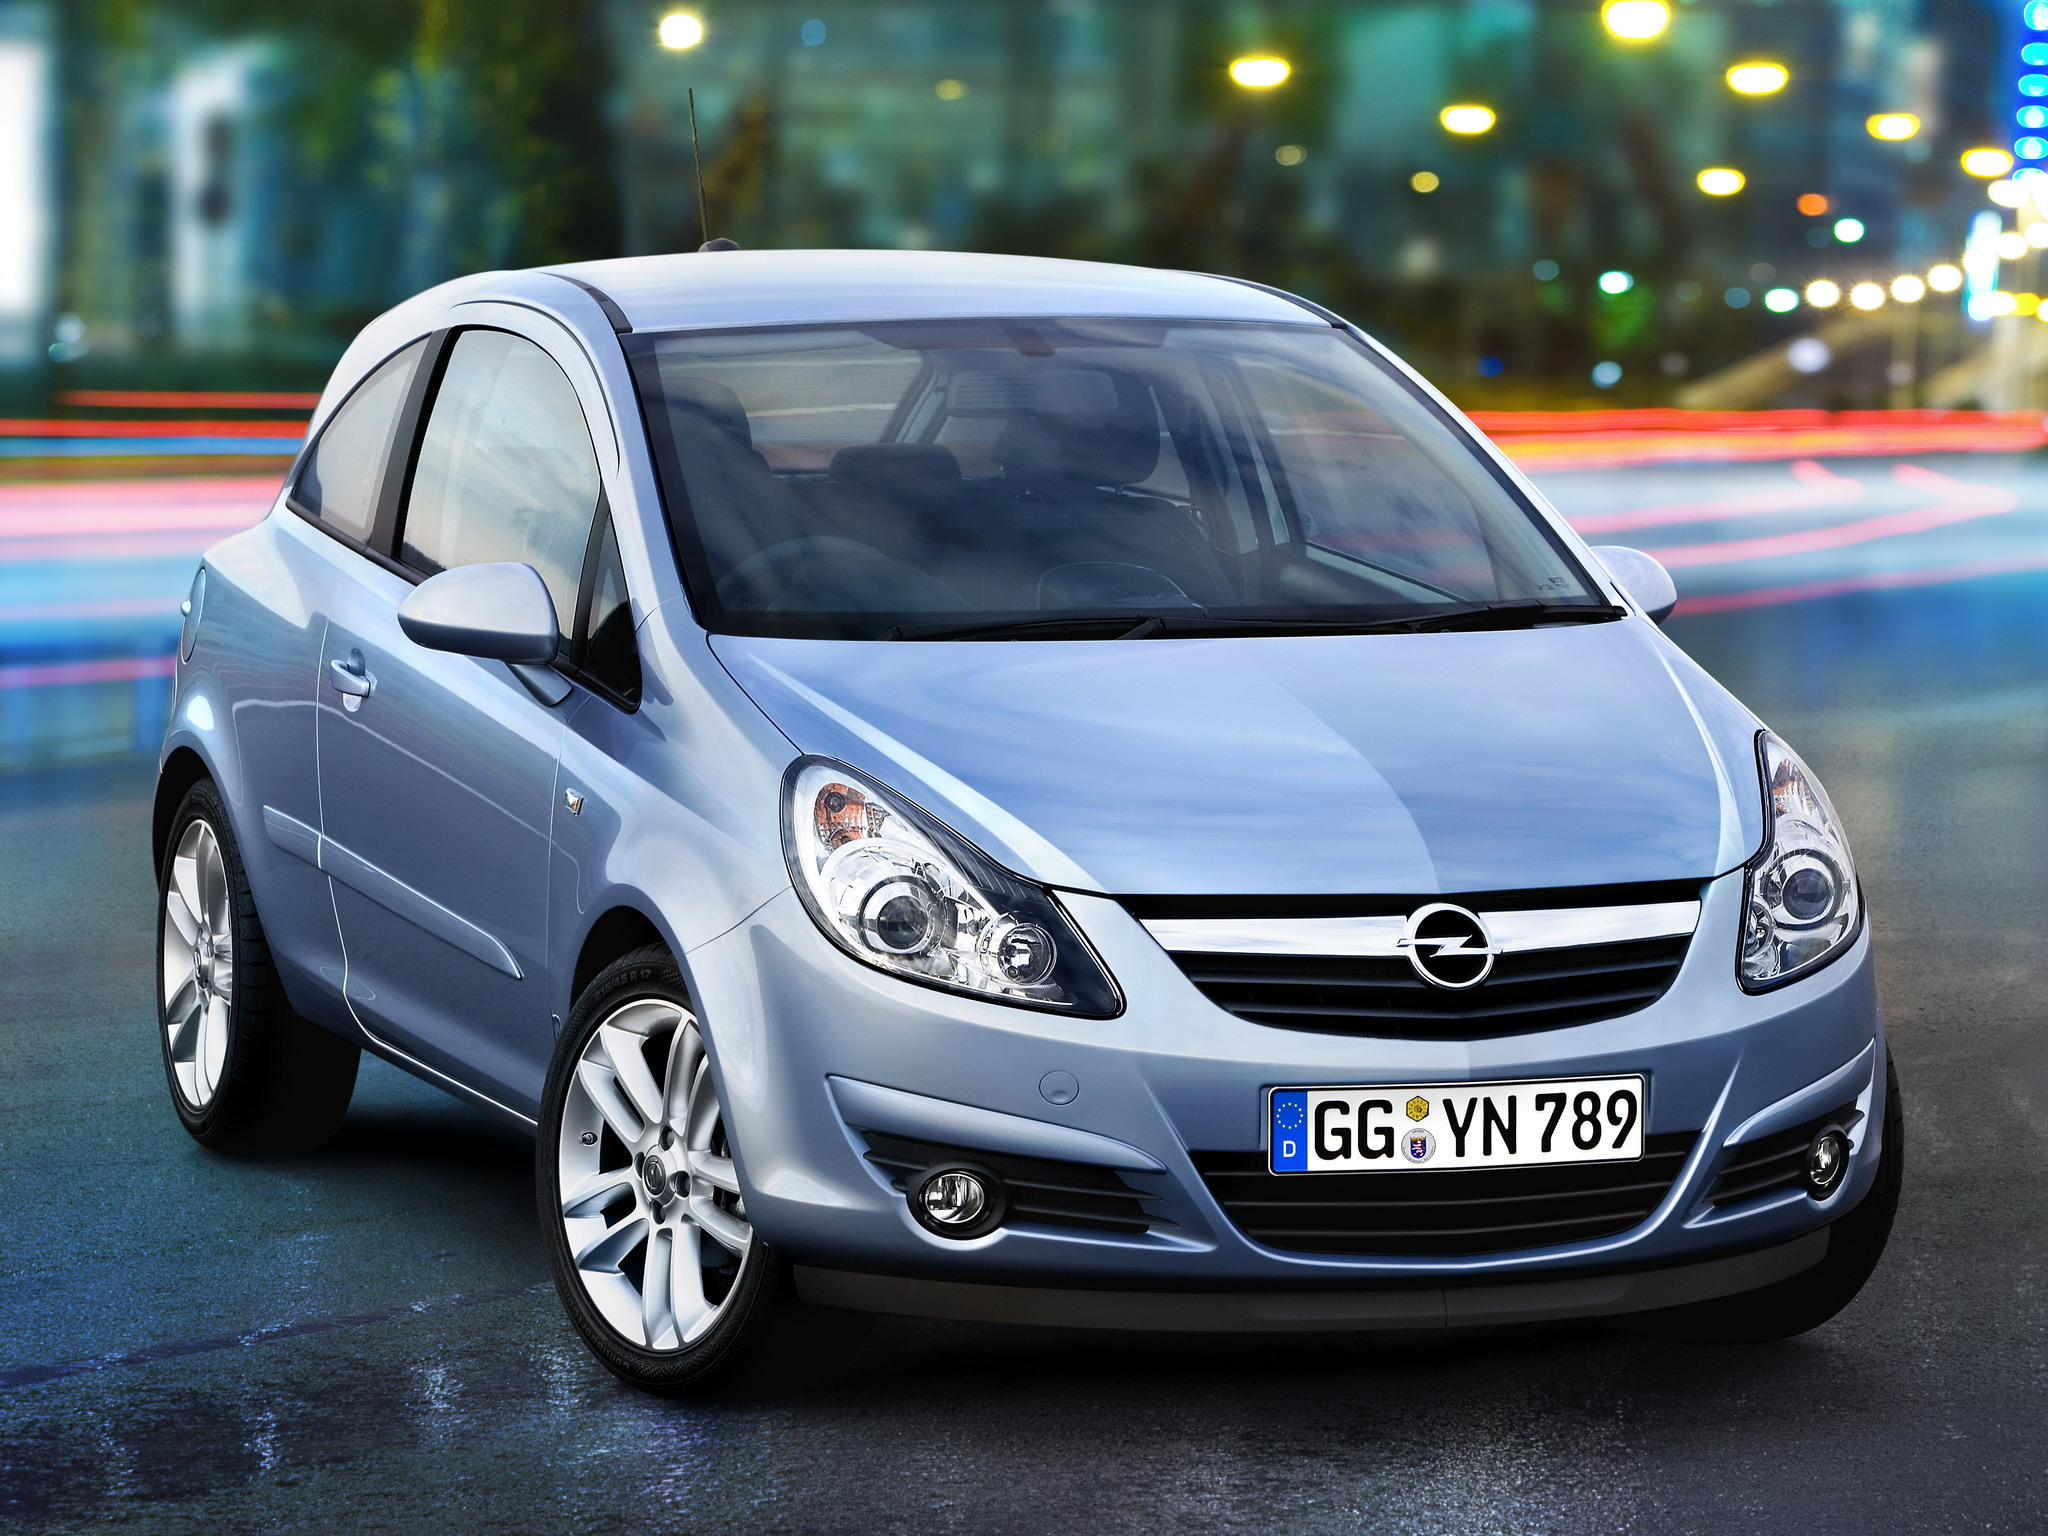 OPEL Corsa car technical data. Car specifications. Vehicle fuel